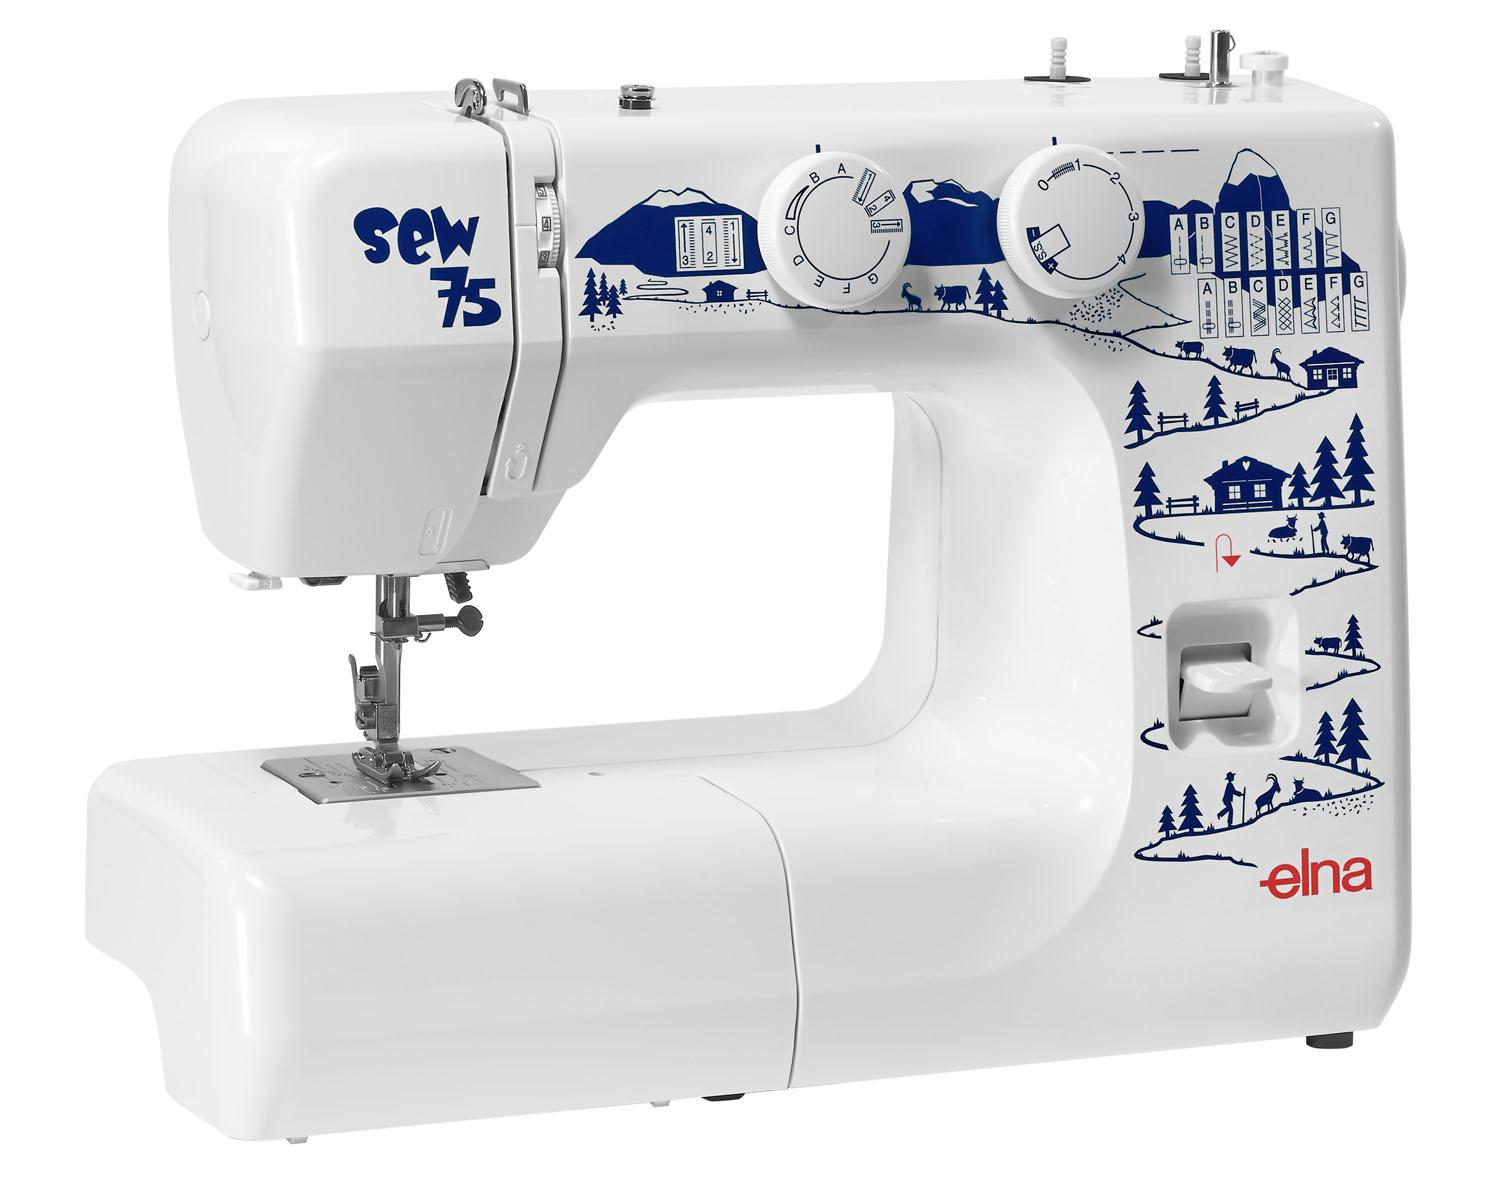 Cheap Sewing Machines Australia Elna Australia Sewing Sew 75